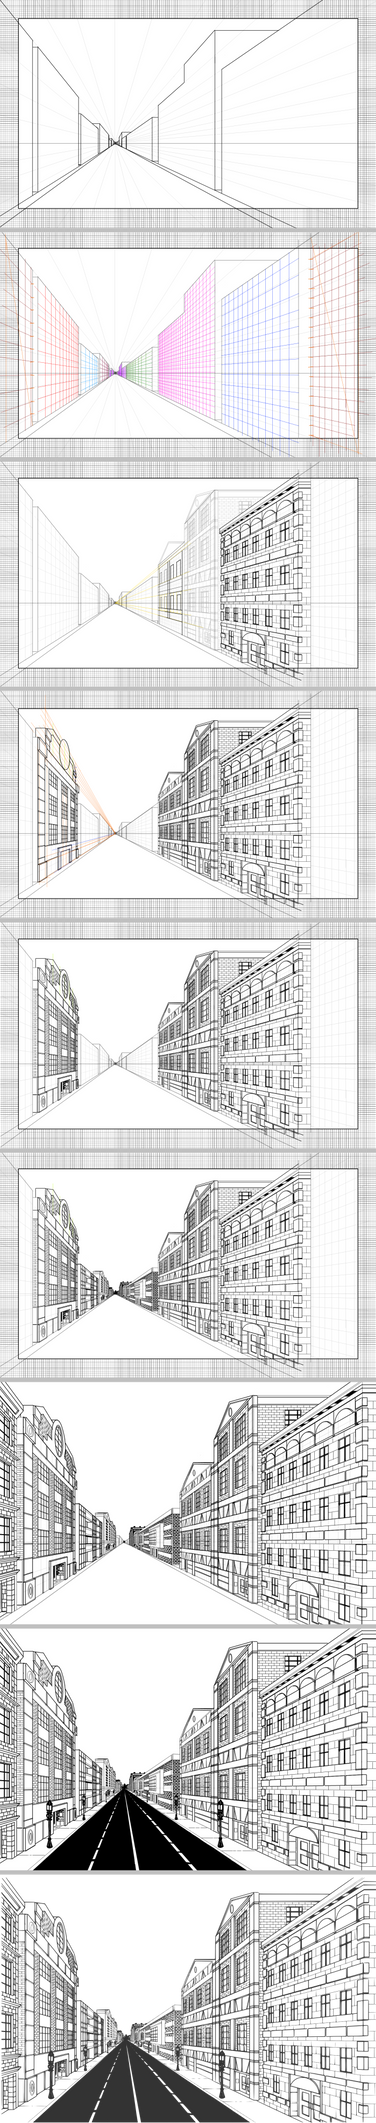 1point Perspective Practice - steps by viscid2007